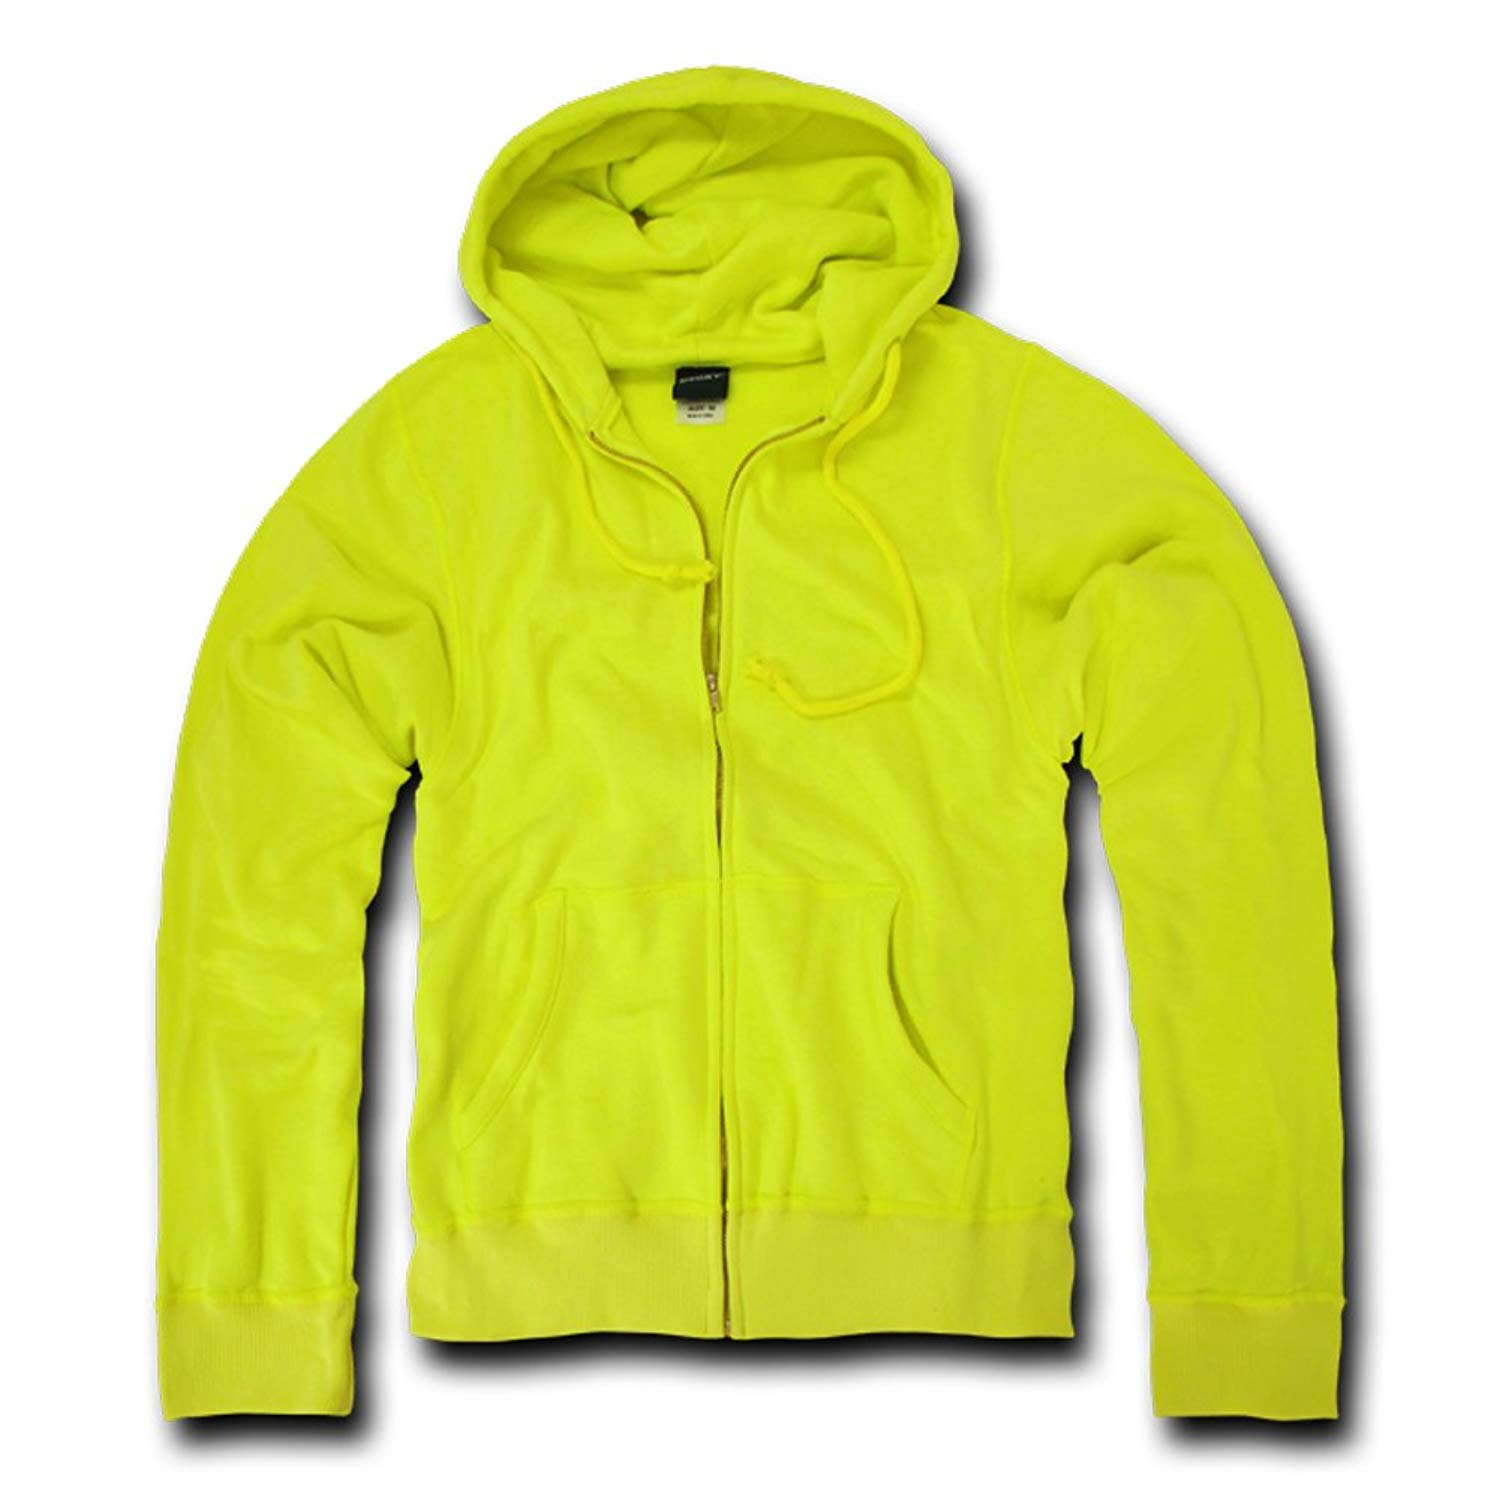 DECKY YELLOW Neon Basic Zip Up Hoodies for Mens